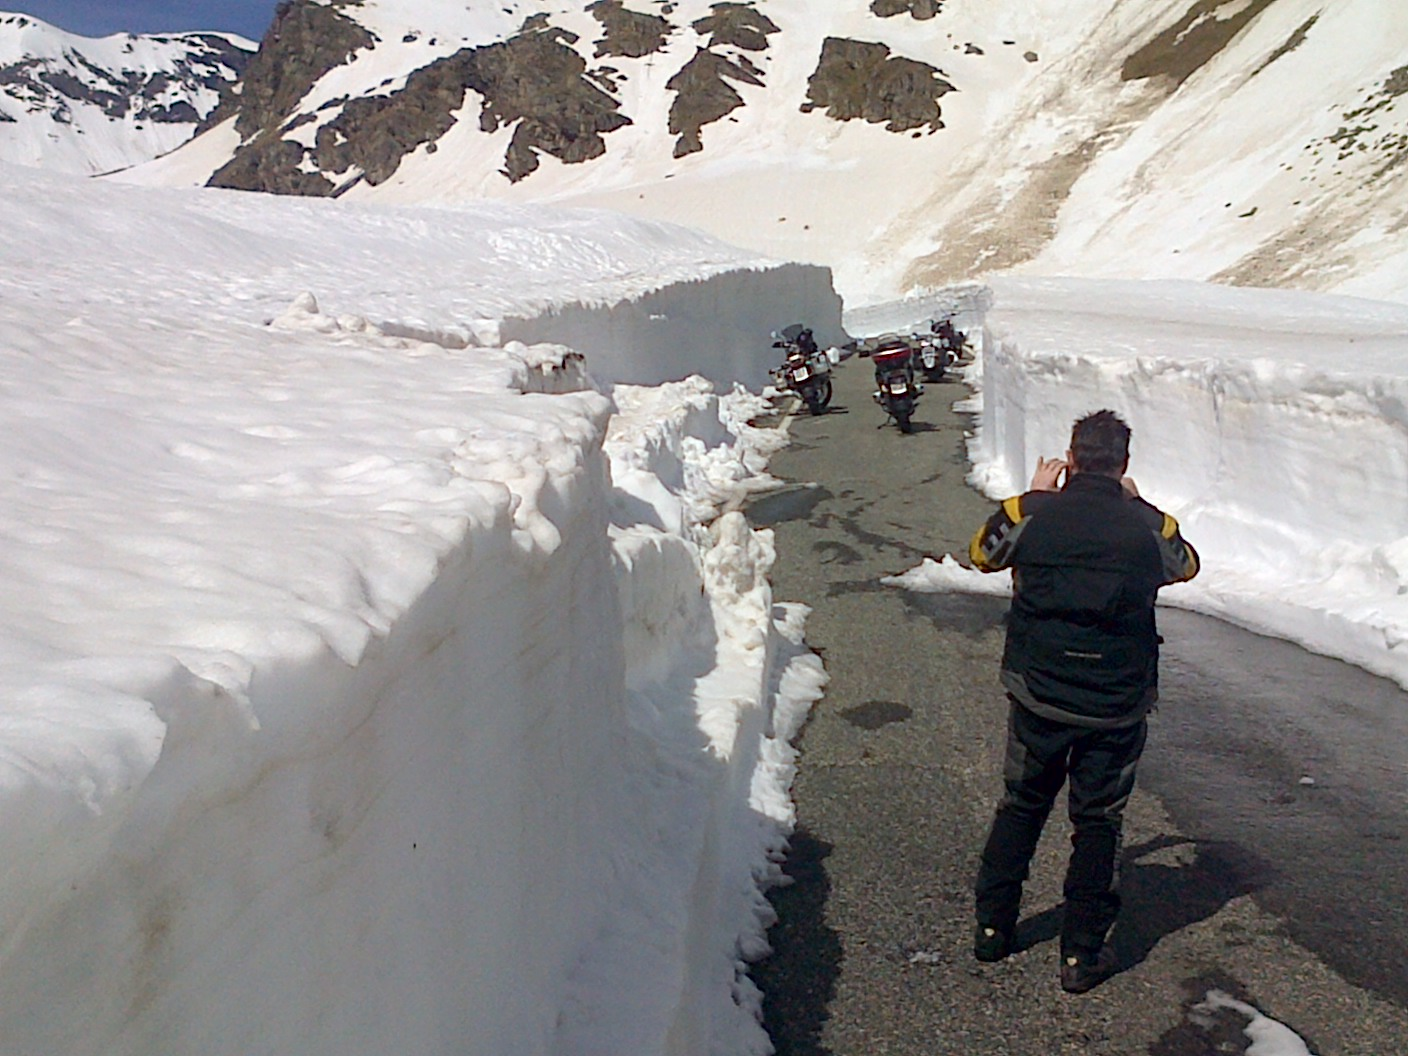 The snow plough had cleared the road